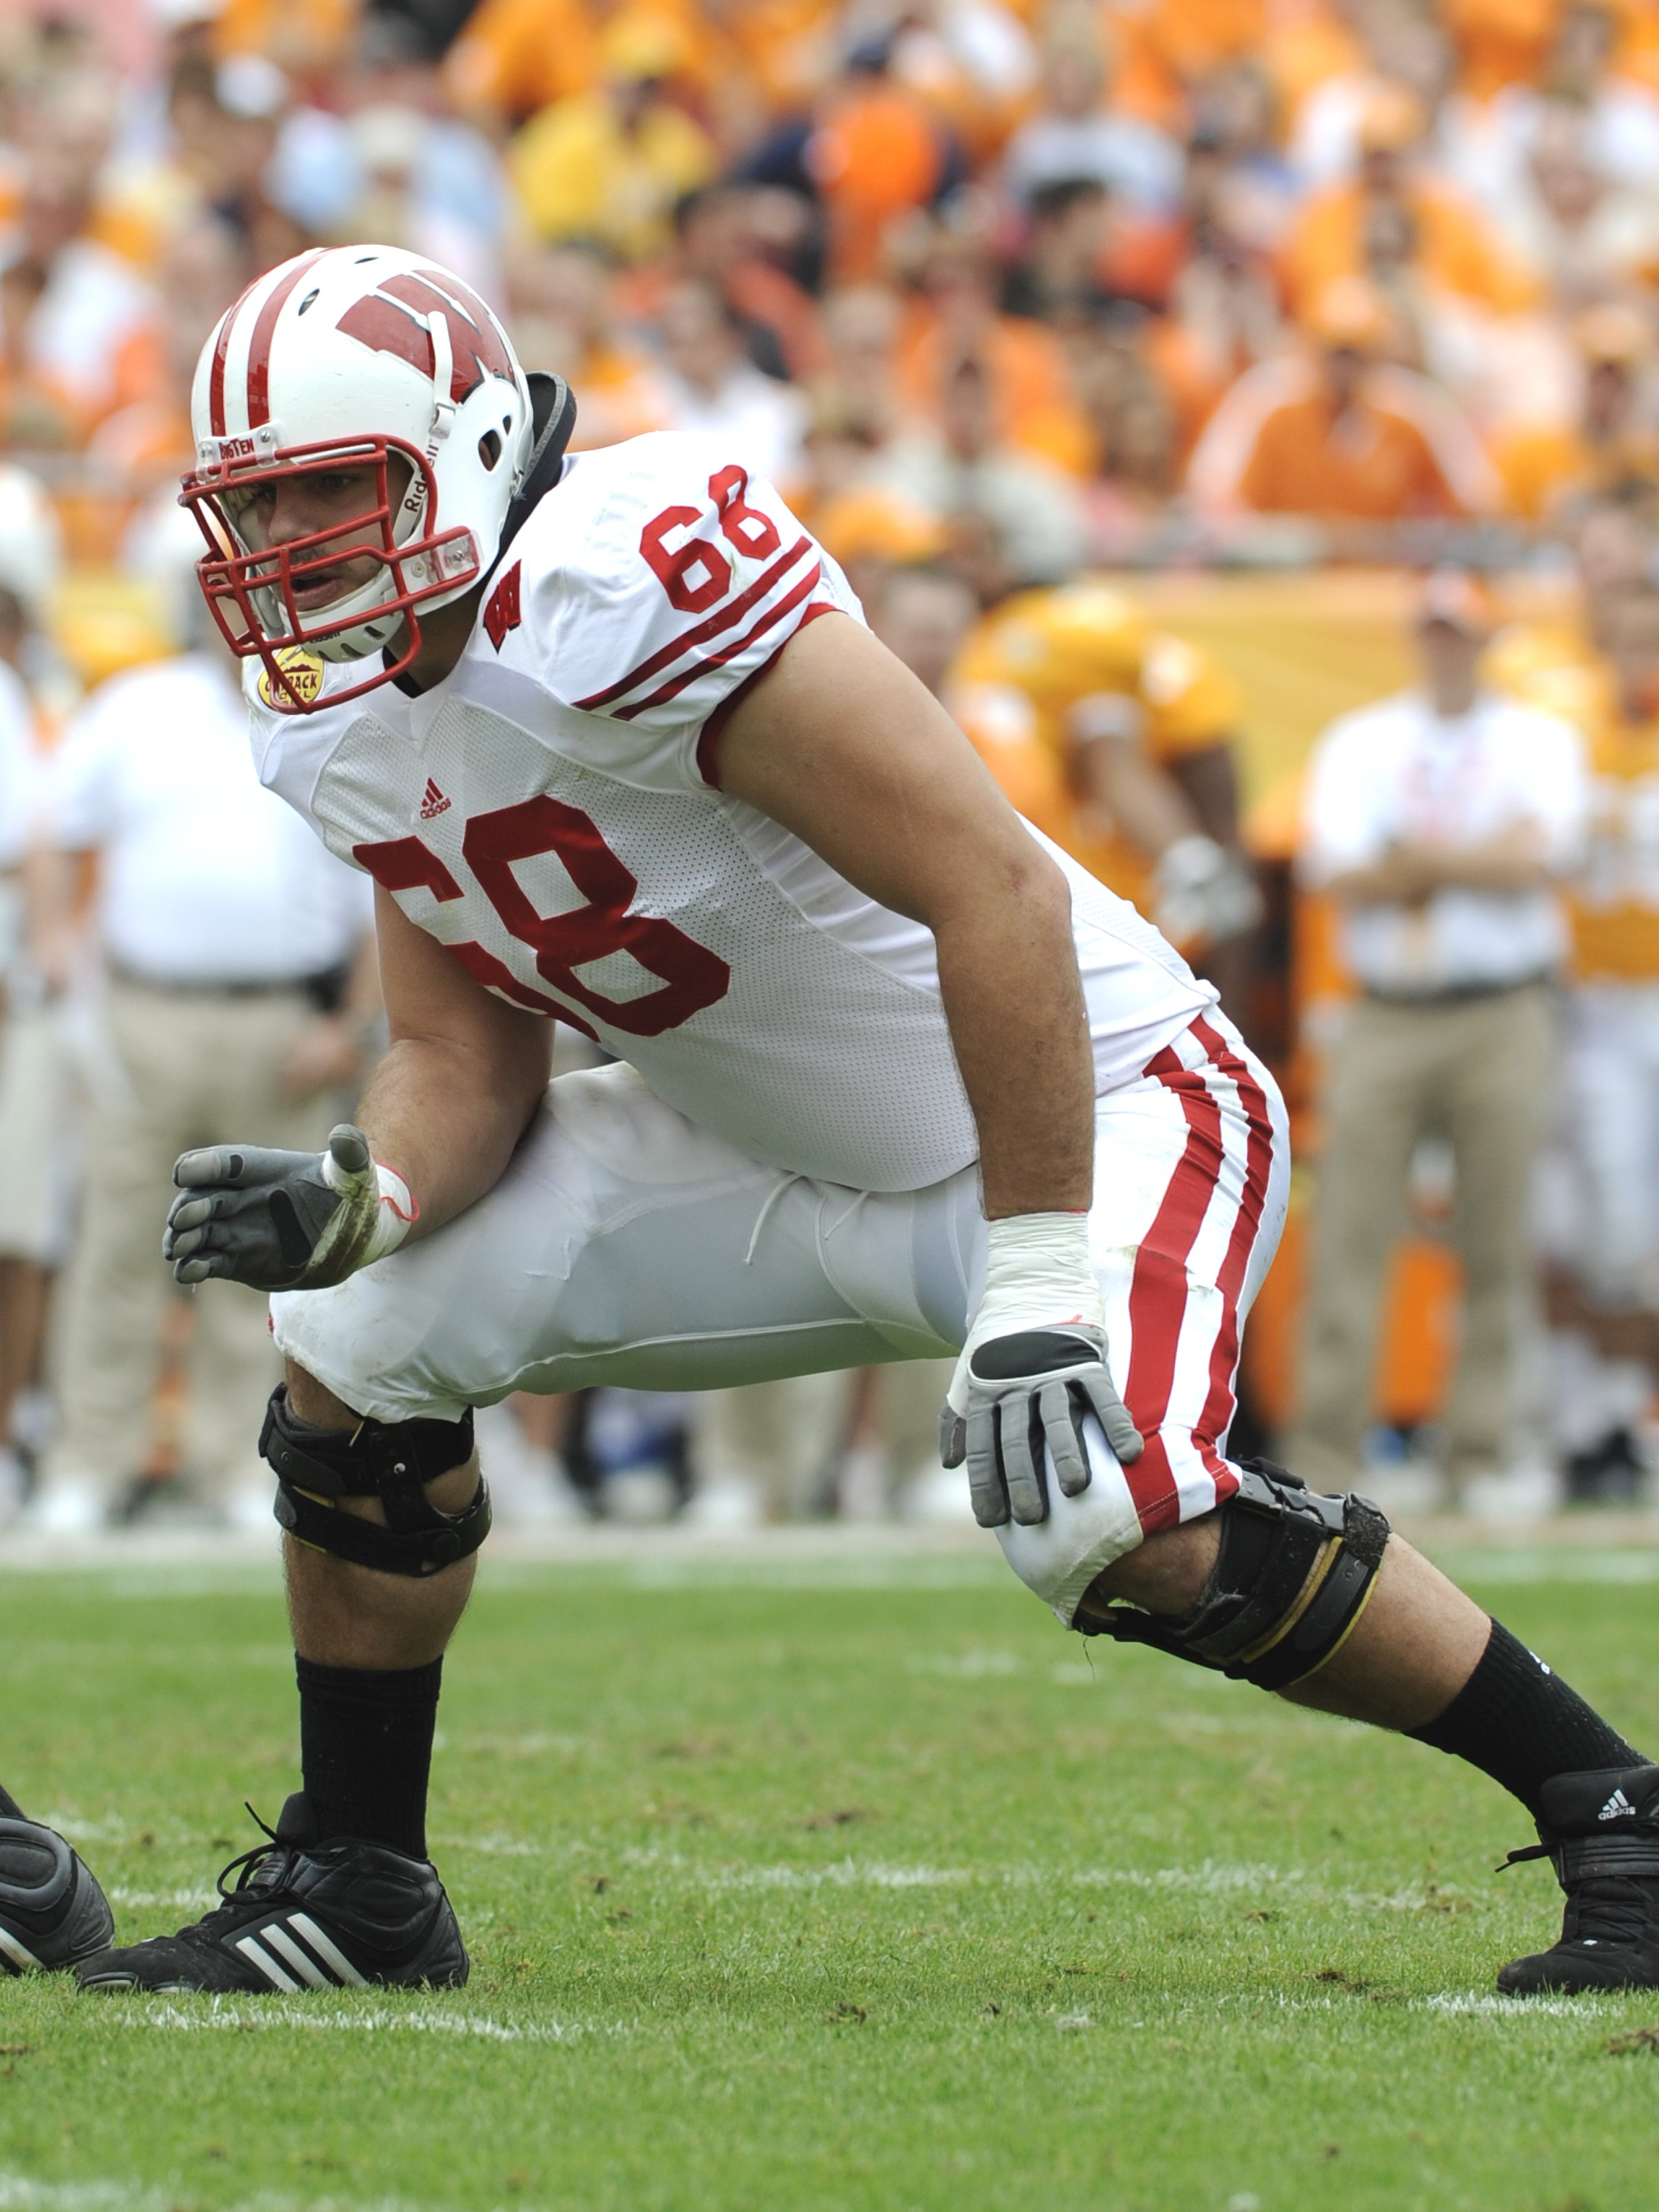 TAMPA, FL -  JANUARY 1: Lineman Gabe Carimi #68 of the Wisconsin Badgers sets to block  against the Tennessee Volunteers in the 2008 Outback Bowl at Raymond James Stadium on January 1, 2008 in Tampa, Florida.  The Volunteers won 21 - 17. (Photo by Al Mess